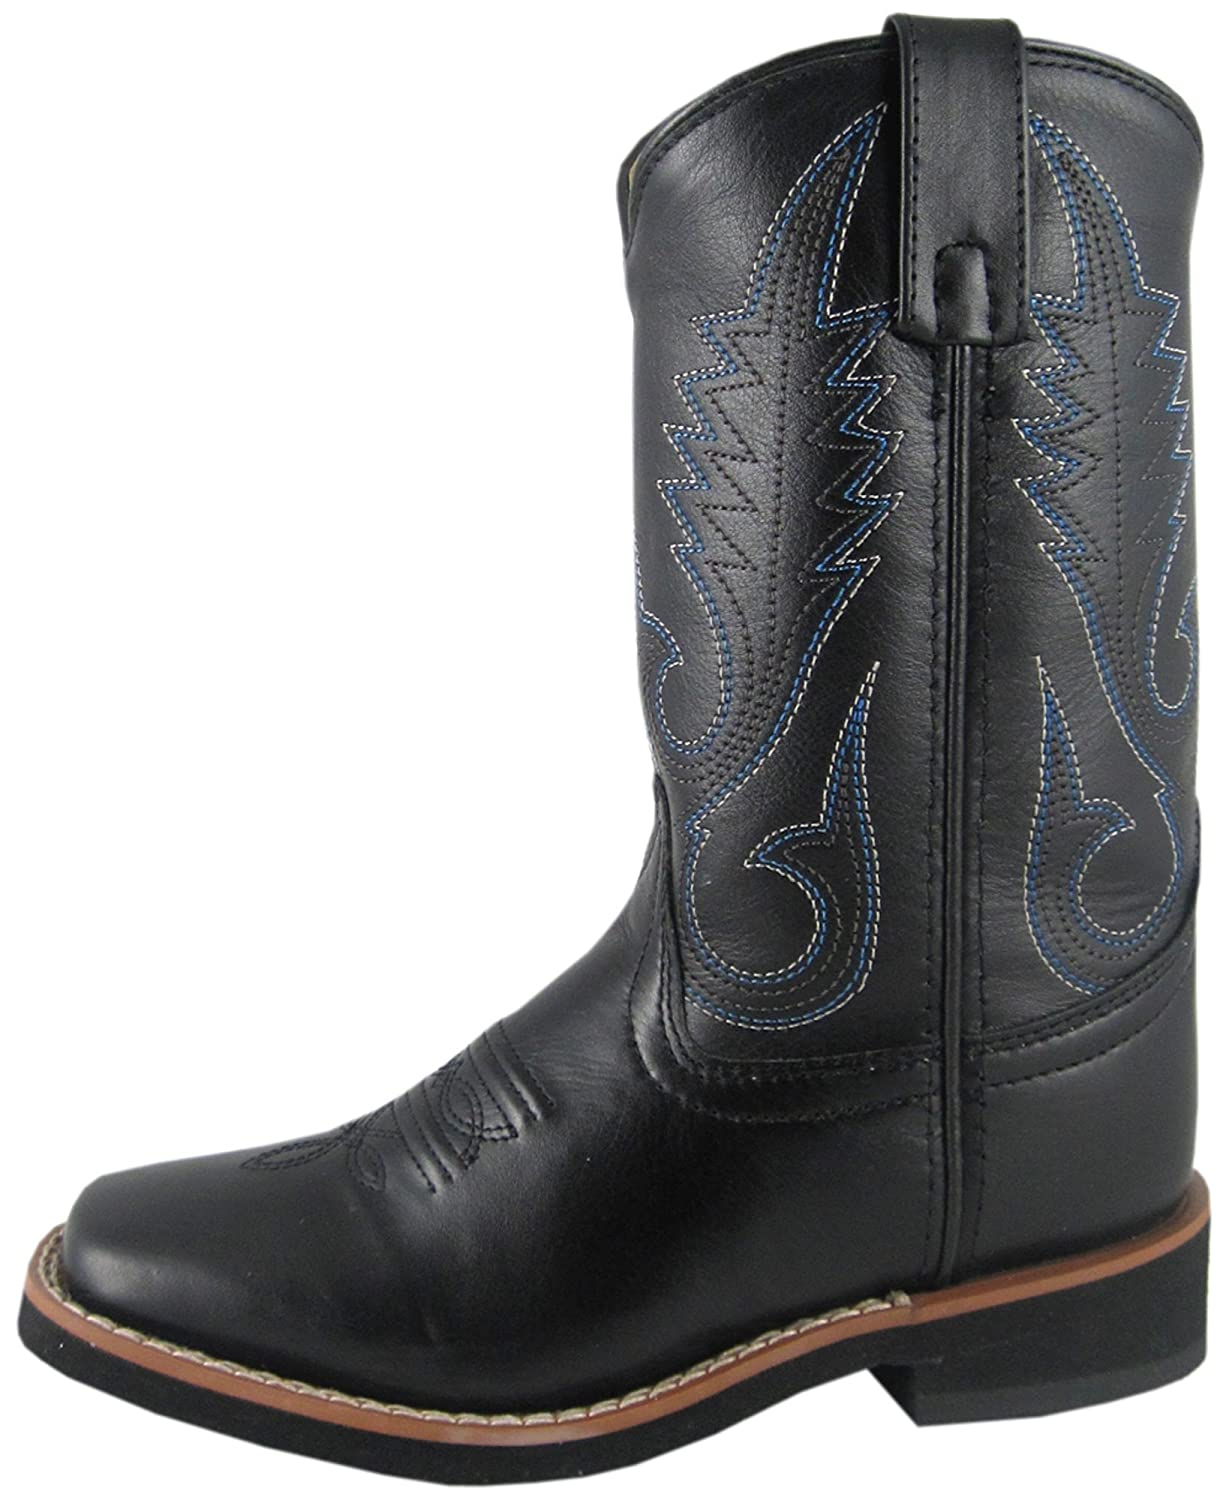 2ad349d22a5 Smoky Mountain Boys' Western Boot Square Toe Black 6 D(M) US